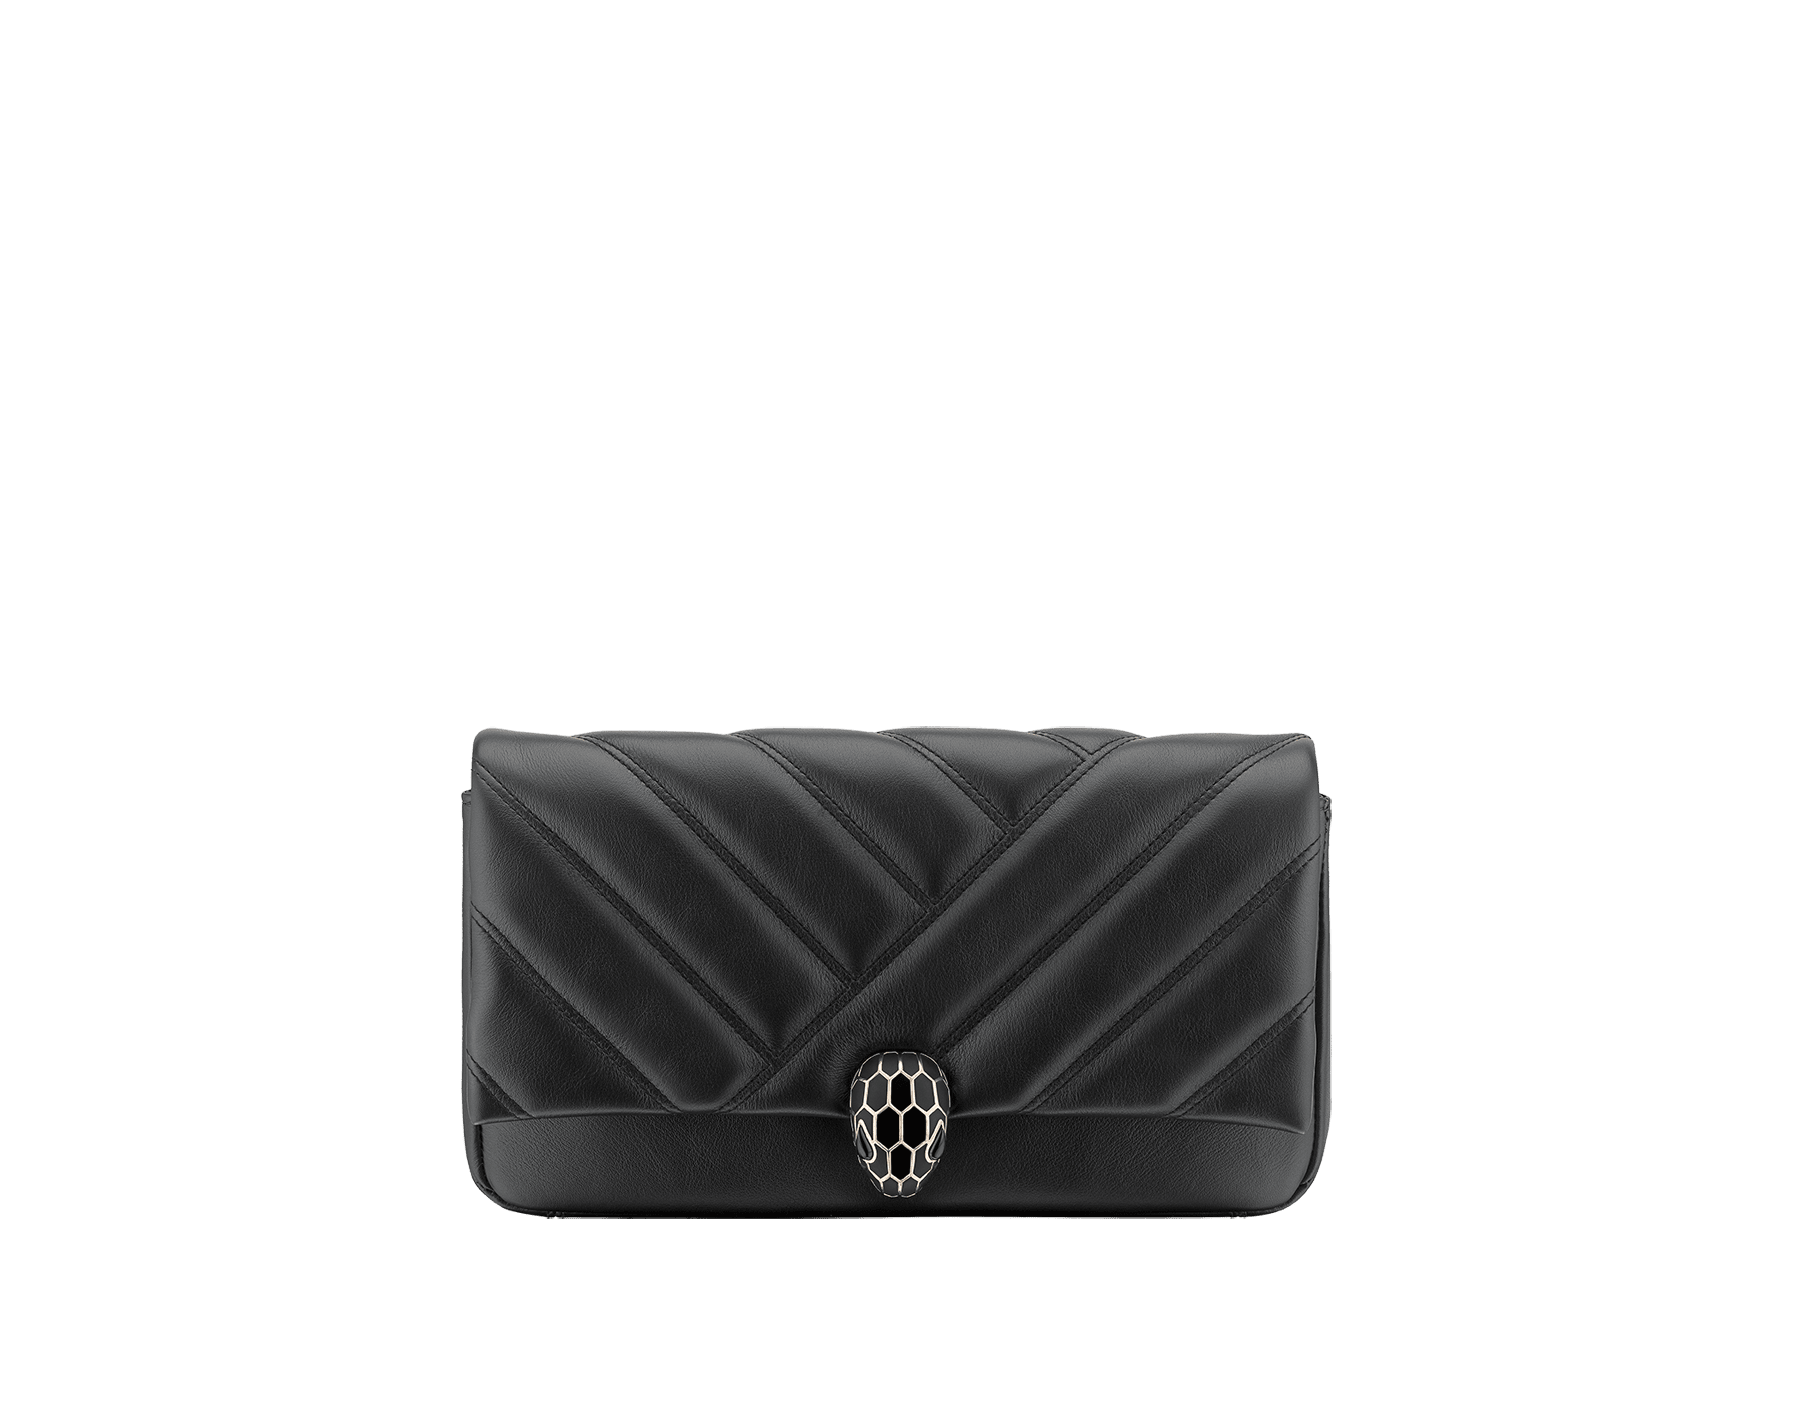 Serpenti Cabochon clutch bag in soft matelassé black calf leather, with a graphic motif. Tempting pink gold-plated brass snake head closure in matt and shiny black enamel and black onyx eyes. 289301 image 1